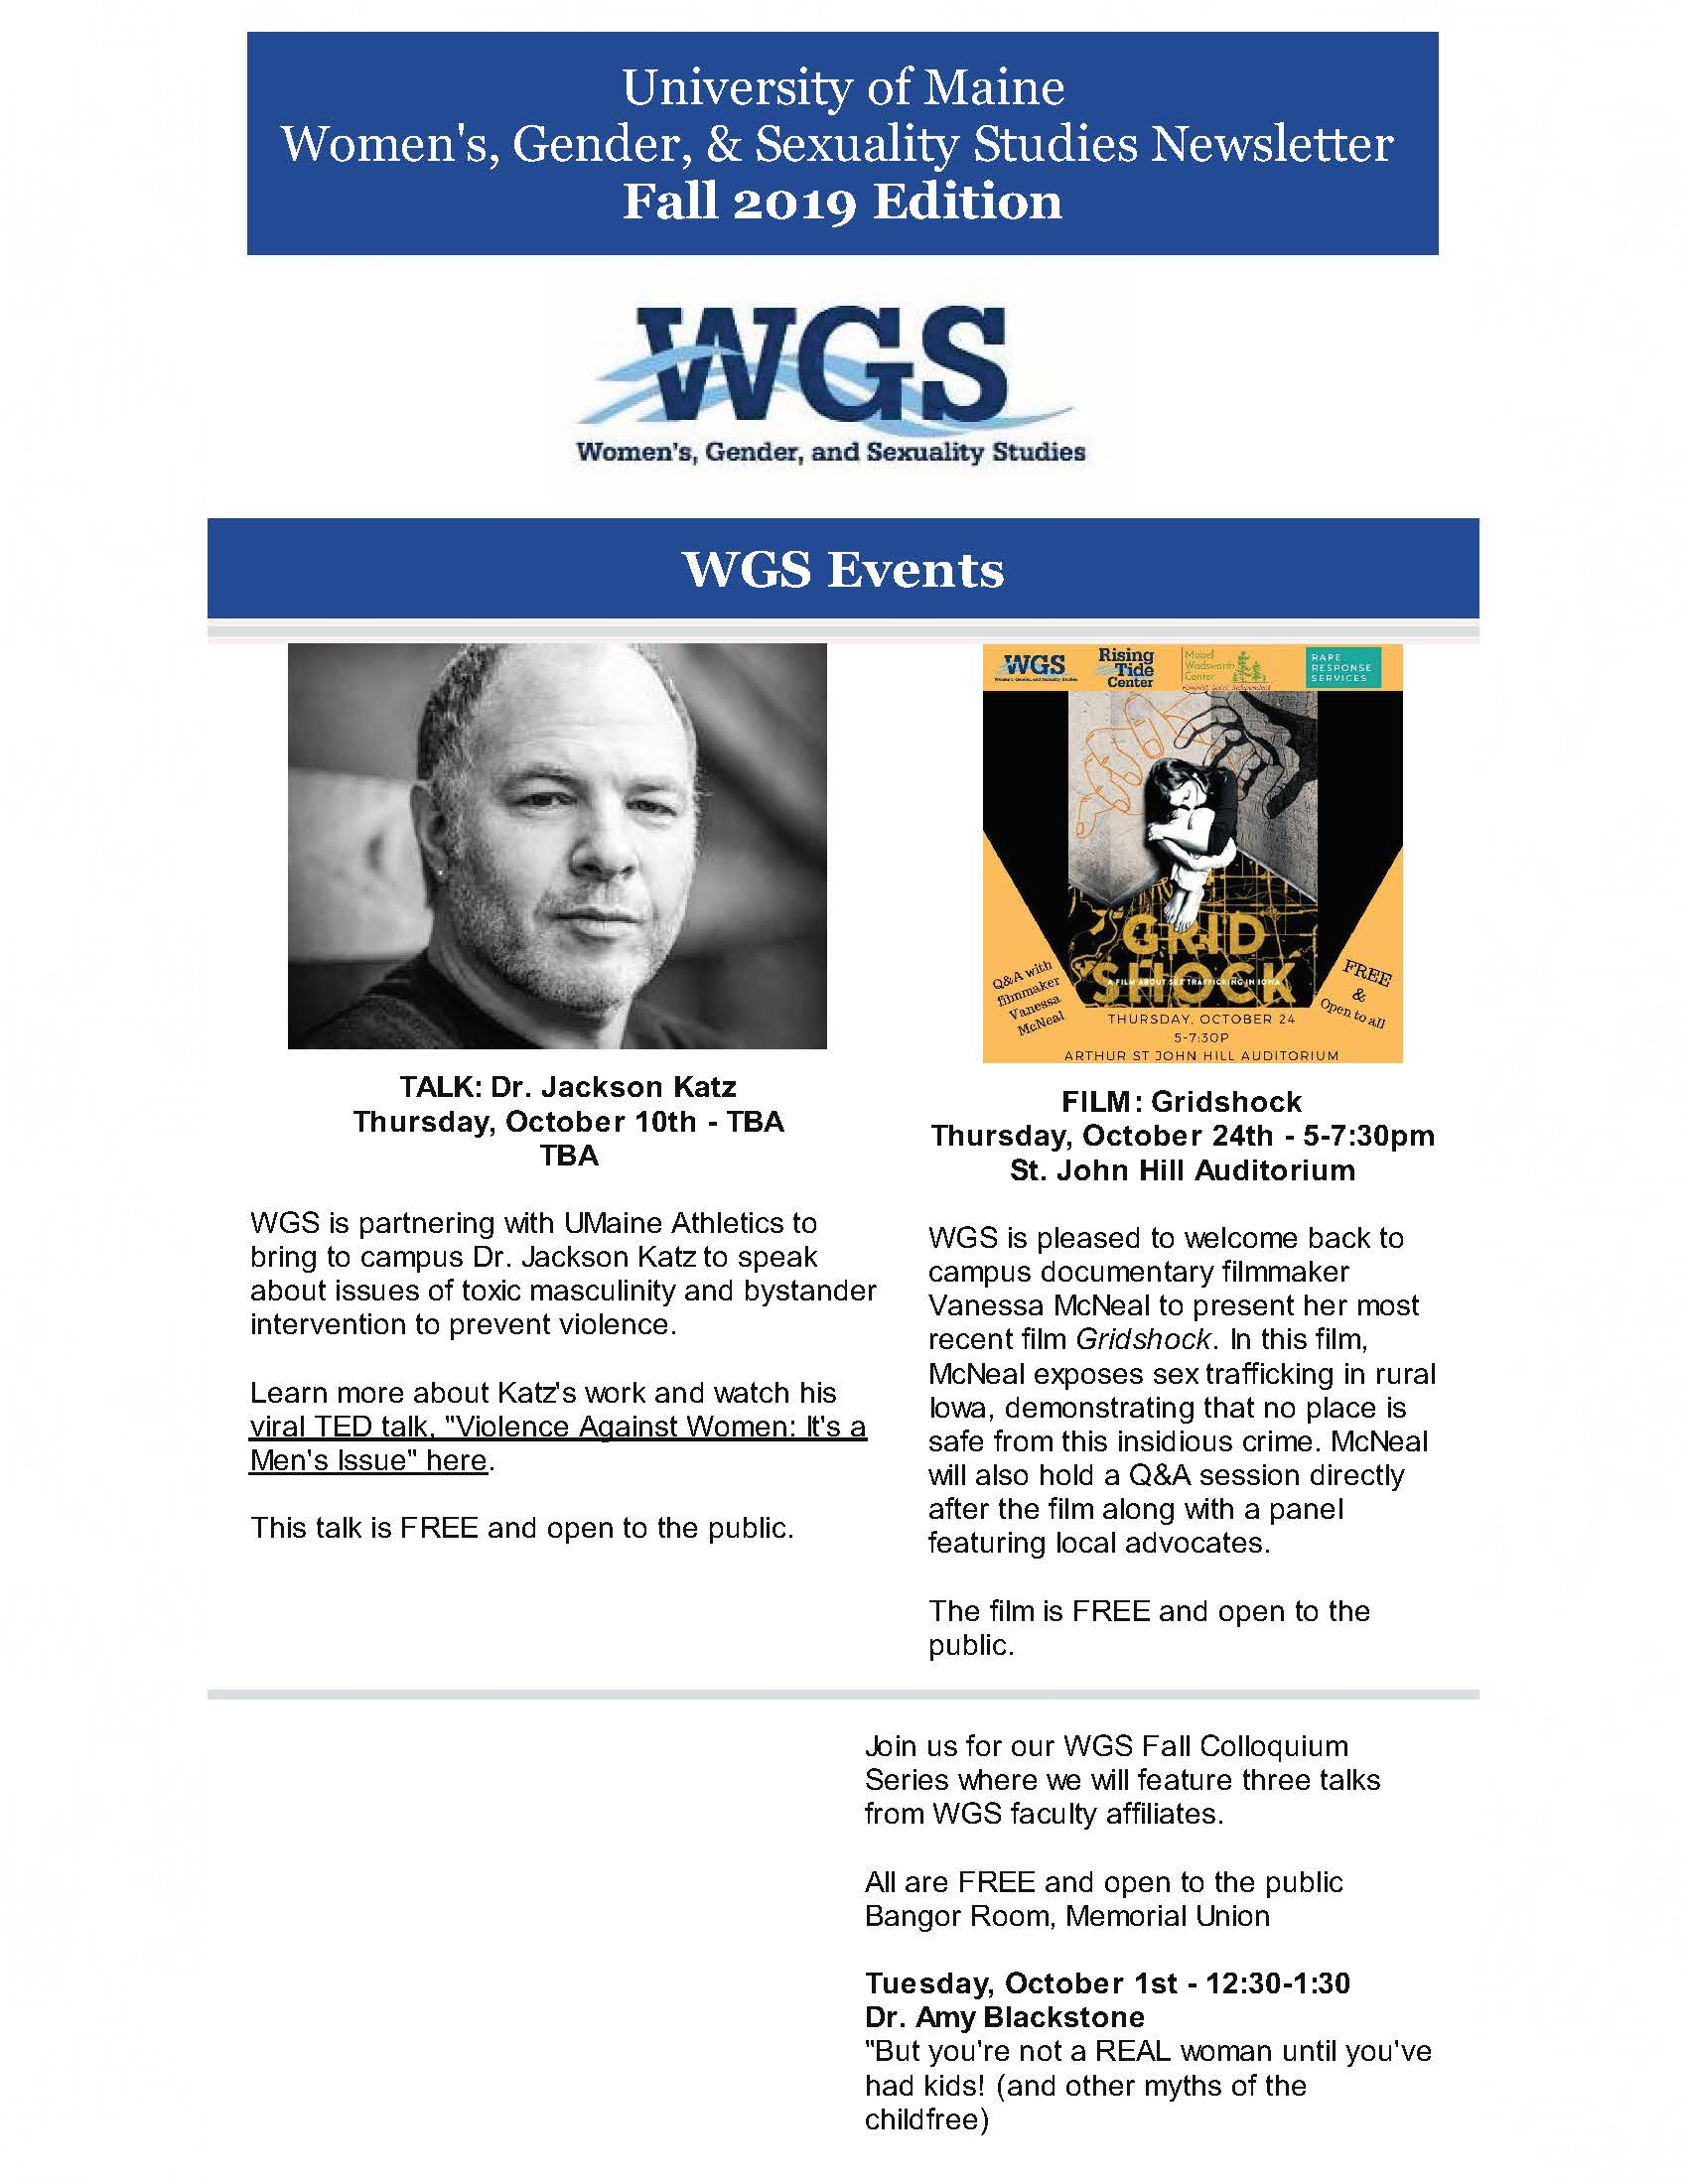 Fall 2019 WGS Newsletter - Women's, Gender, and Sexuality